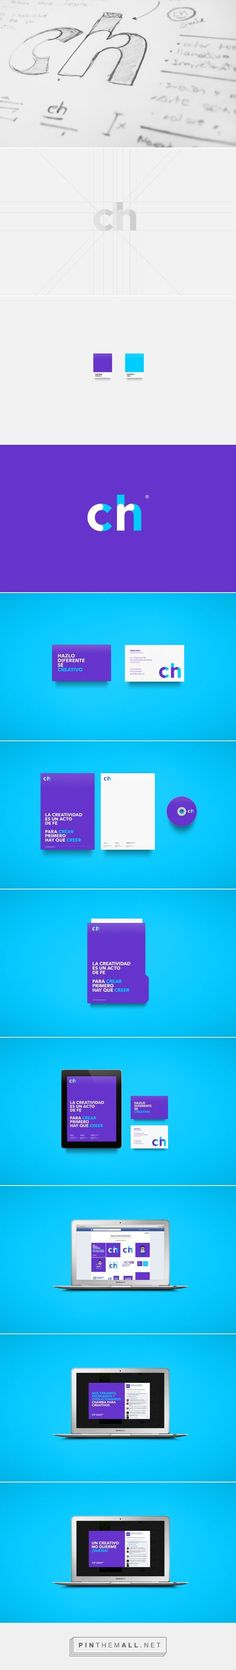 Chamba para Creativos ® on Behance - created on 2015-07-15 20:53:34